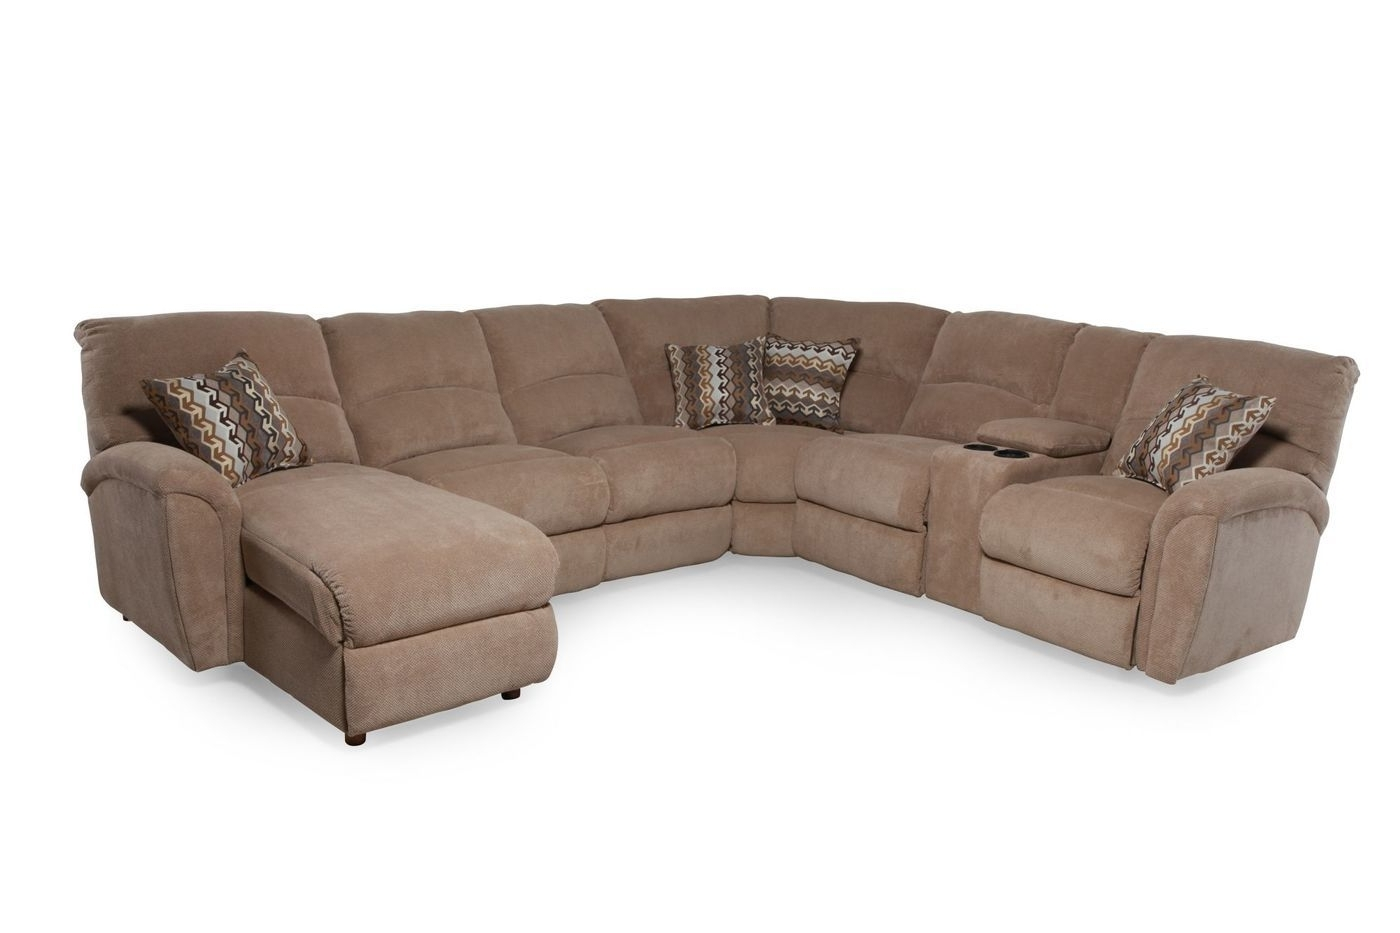 Nice Sectional Sofas Okc , Elegant Sectional Sofas Okc 60 On Sofa Throughout 2019 Okc Sectional Sofas (View 8 of 20)